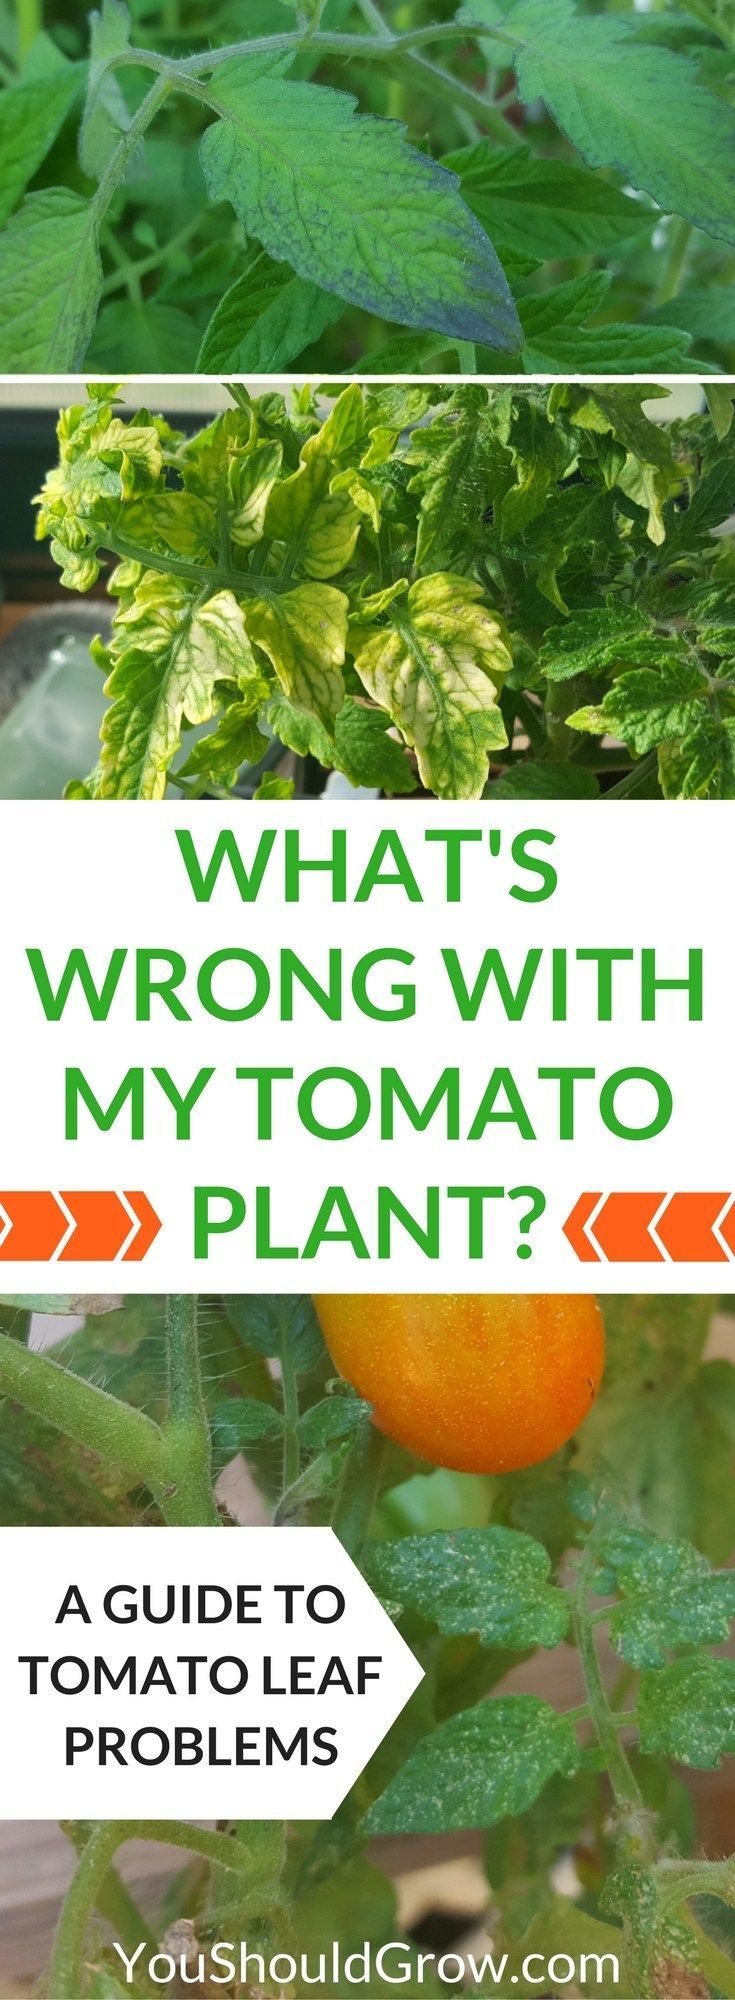 133 Best Images About Growing Tomatoes On 400 x 300